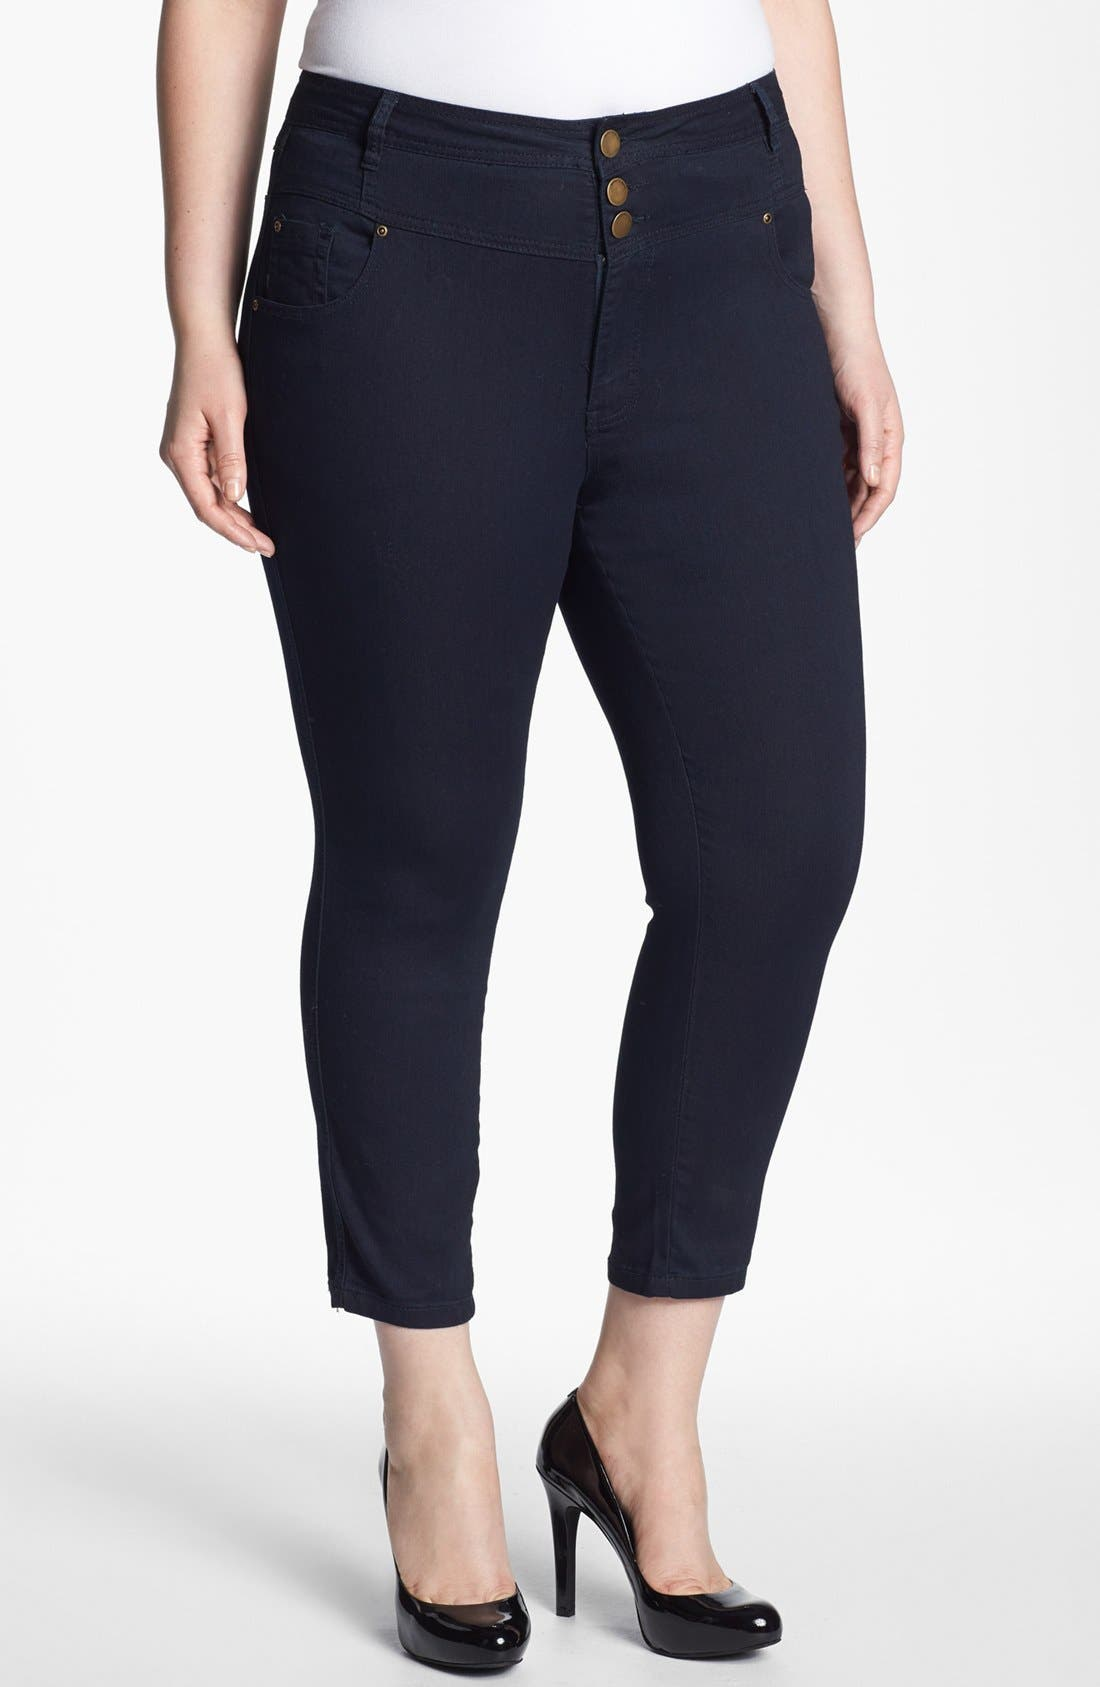 Alternate Image 1 Selected - Evans High Waist Slim Ankle Jeans (Plus Size)